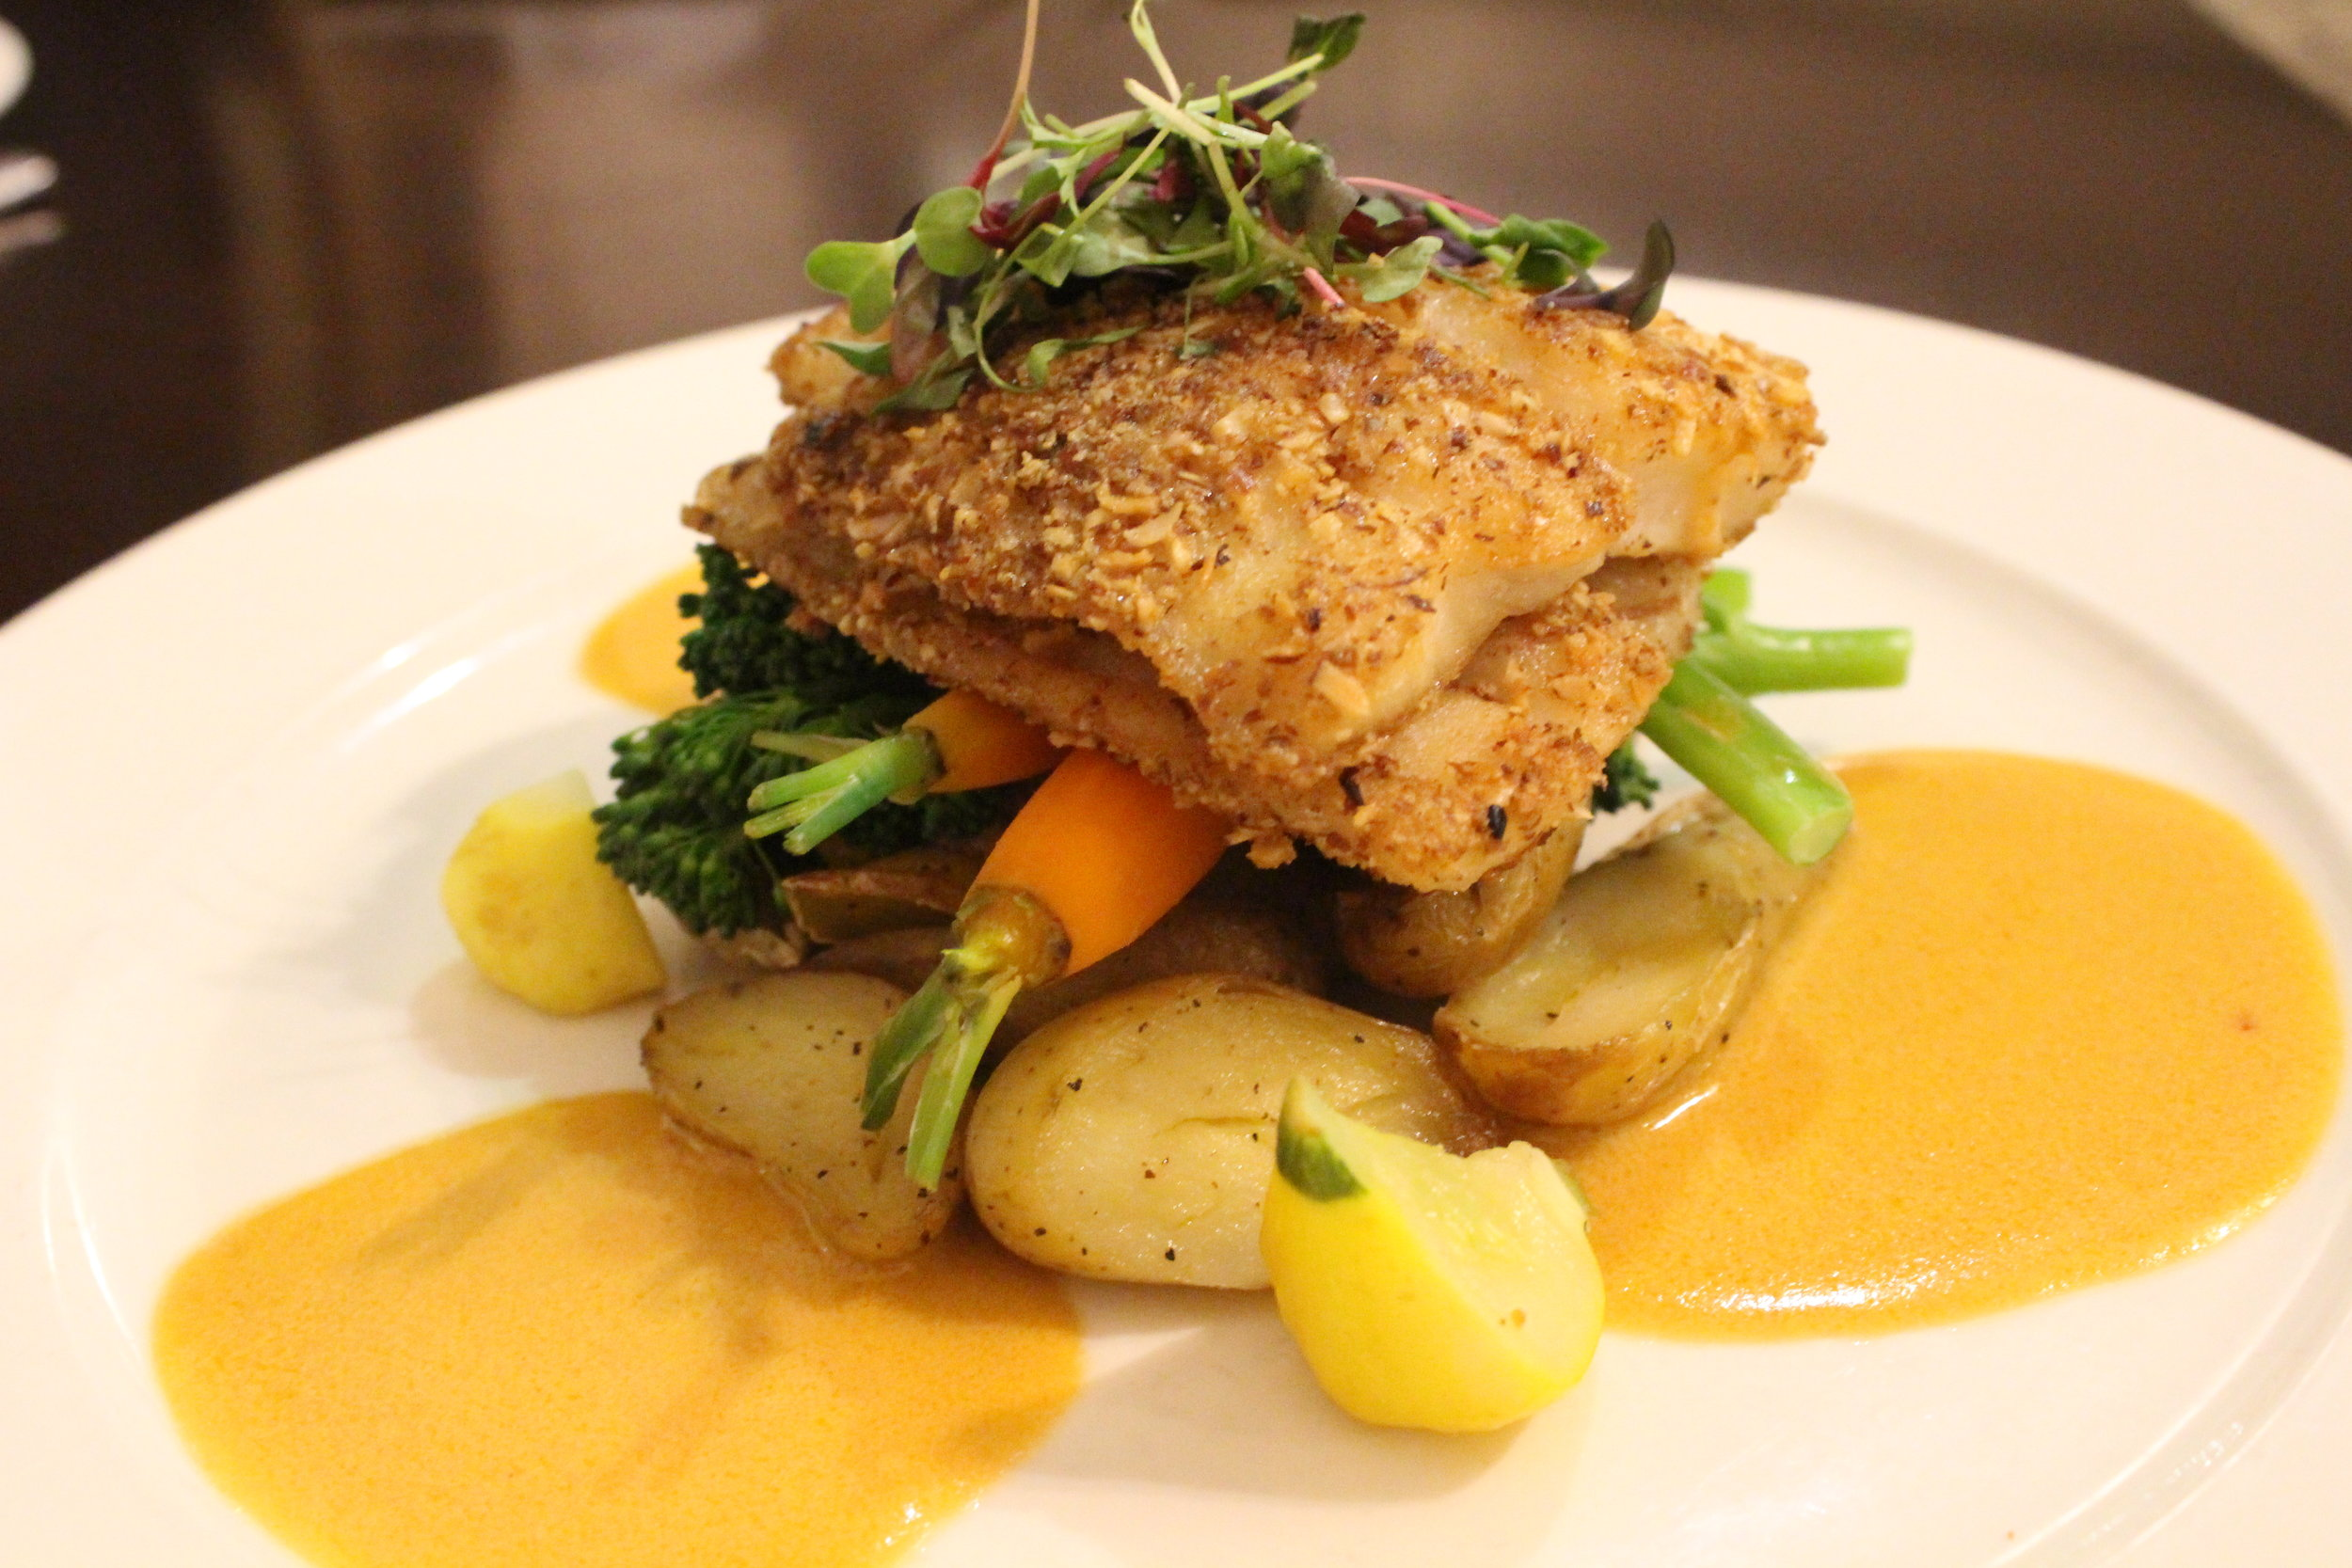 Almond crusted Butterfish at The Shores Restaurant in La Jolla